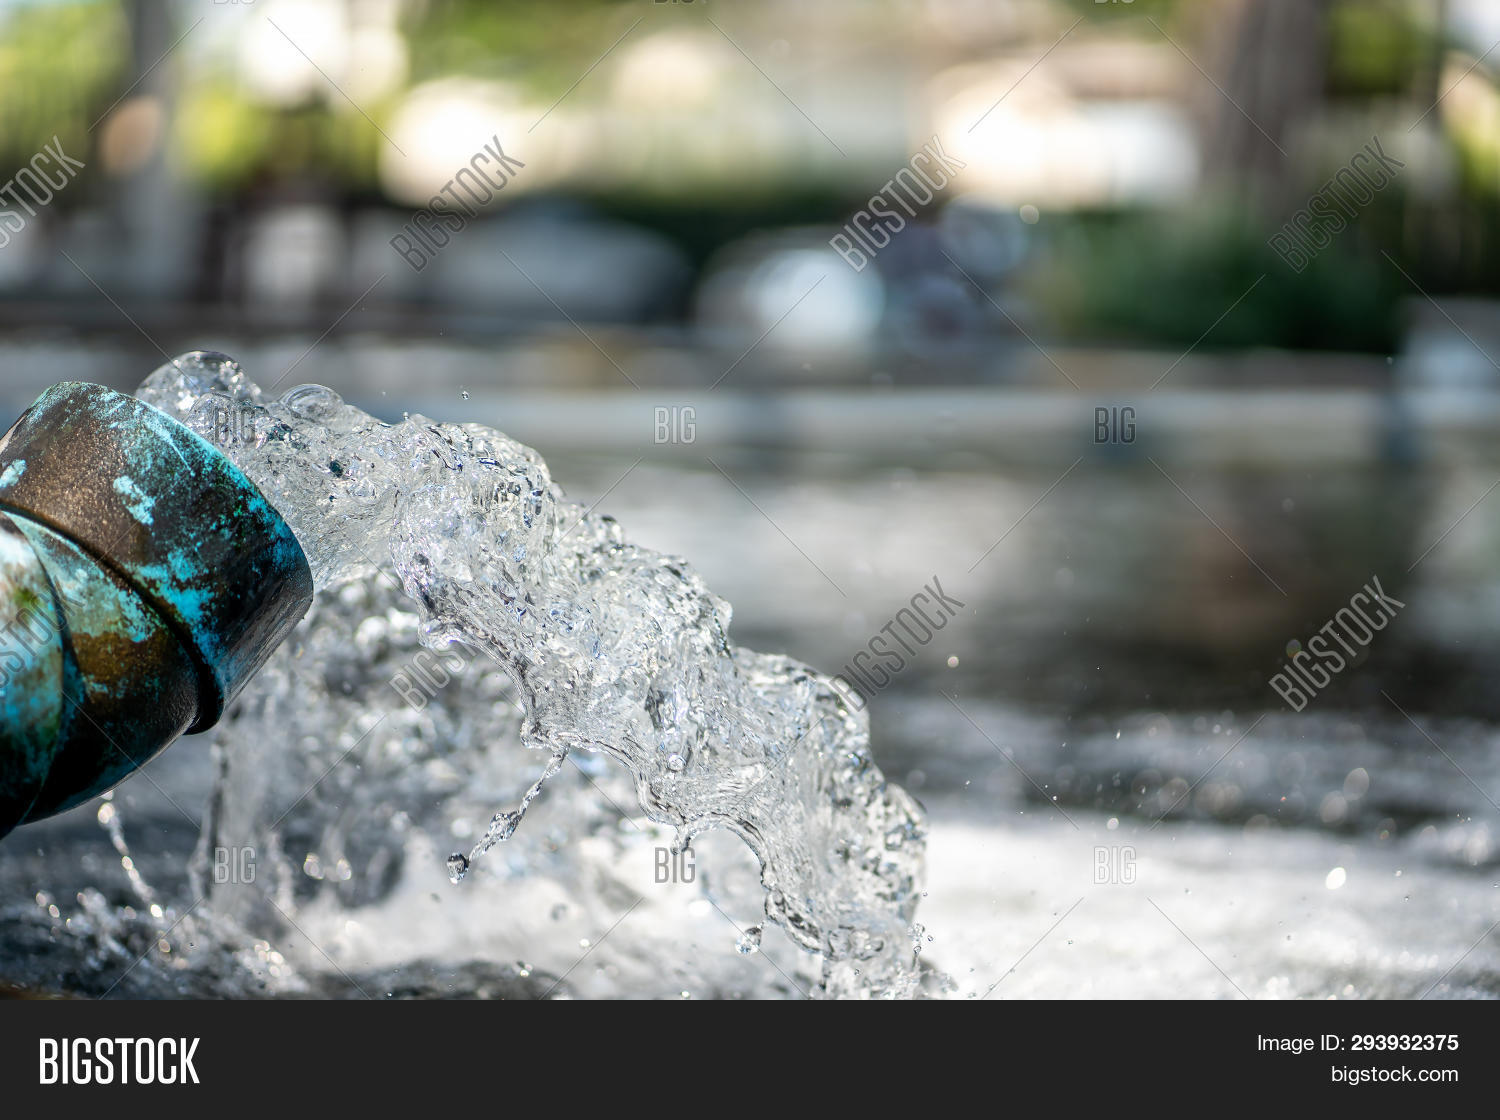 agriculture,animal,aquatic,beautiful,carp,clean,construction,drain,environment,equipment,farm,fish,flow,flowing,freshness,goldfish,groundwater,group,gushing,hobby,industrial,industry,irrigation,japan,japanese,koi,lake,natural,outdoor,oxygen,pet,pipe,pipeline,plant,pond,pool,pump,red,sewage,sewer,showa,space,stream,swim,traditional,treatment,tube,underwater,water